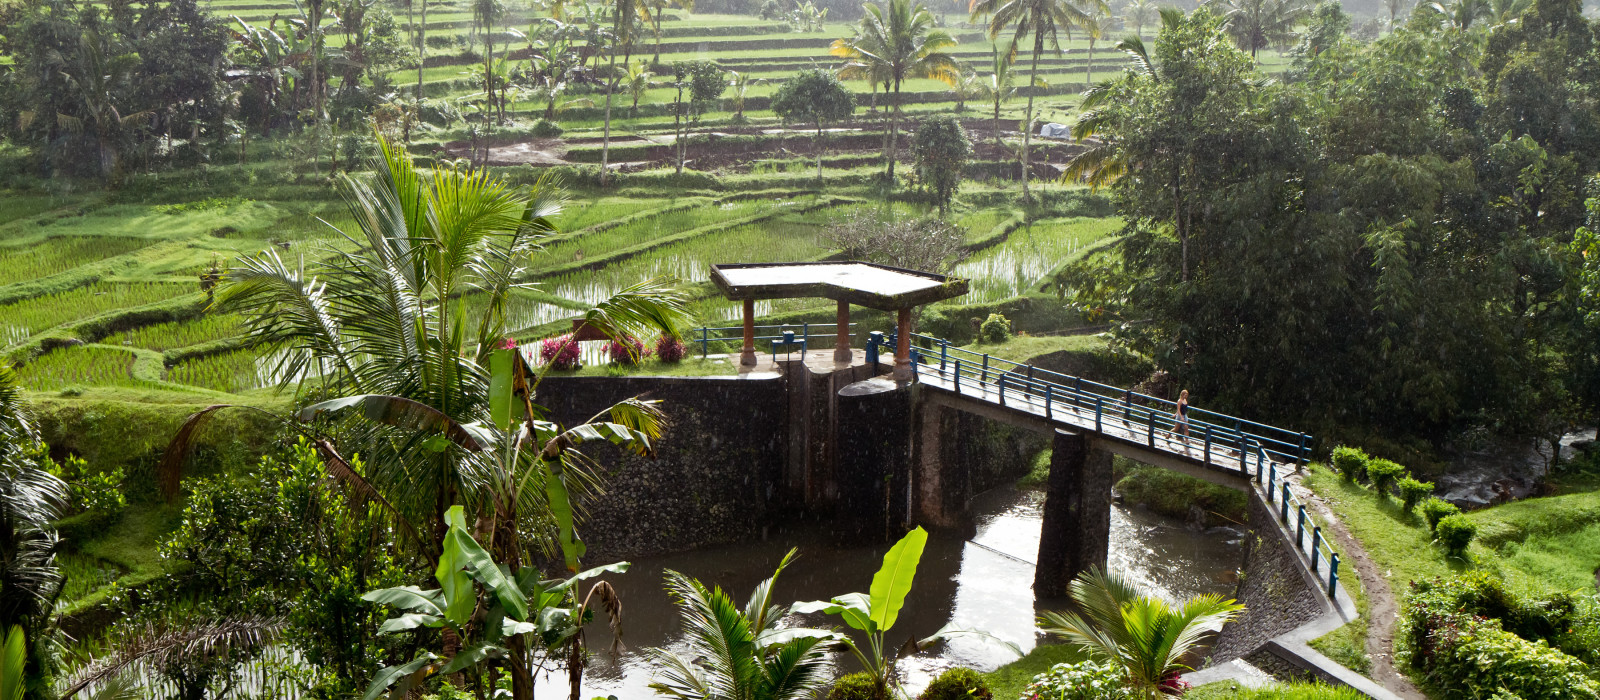 typical terrace rice fields of Bali, Indonesia, Asia